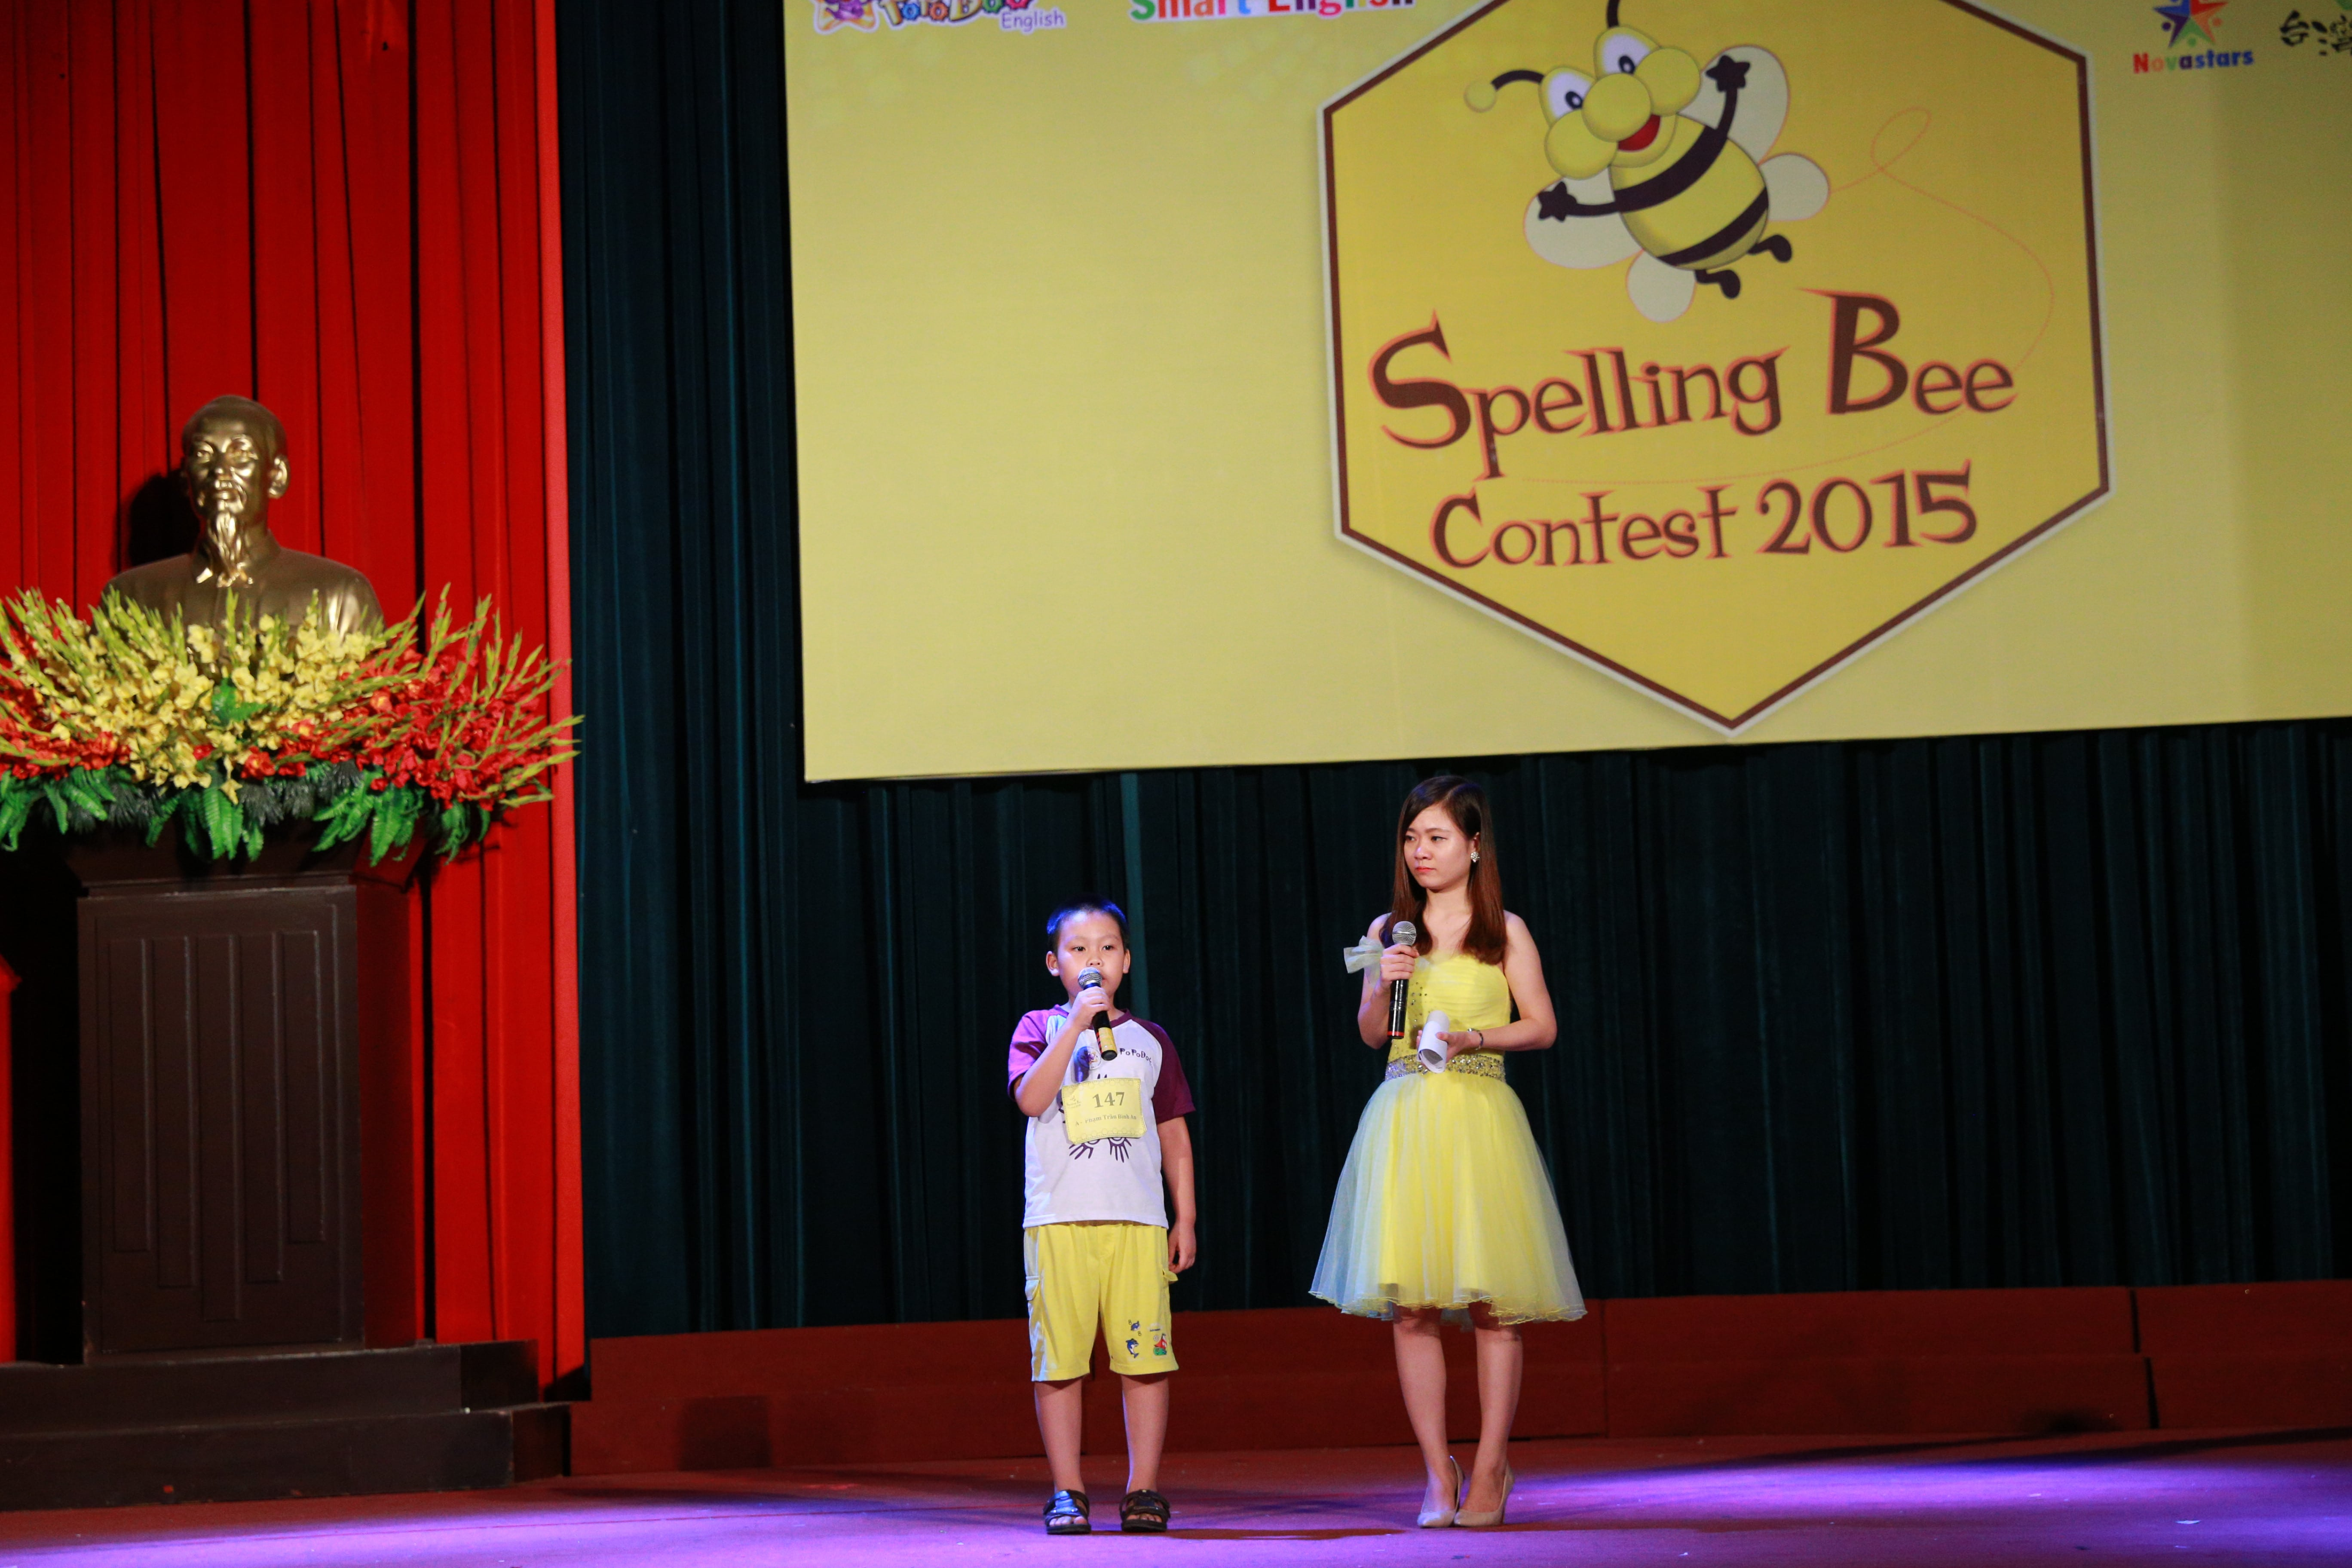 Throwback our Spelling Bee Contest 2015 Champions - Level A